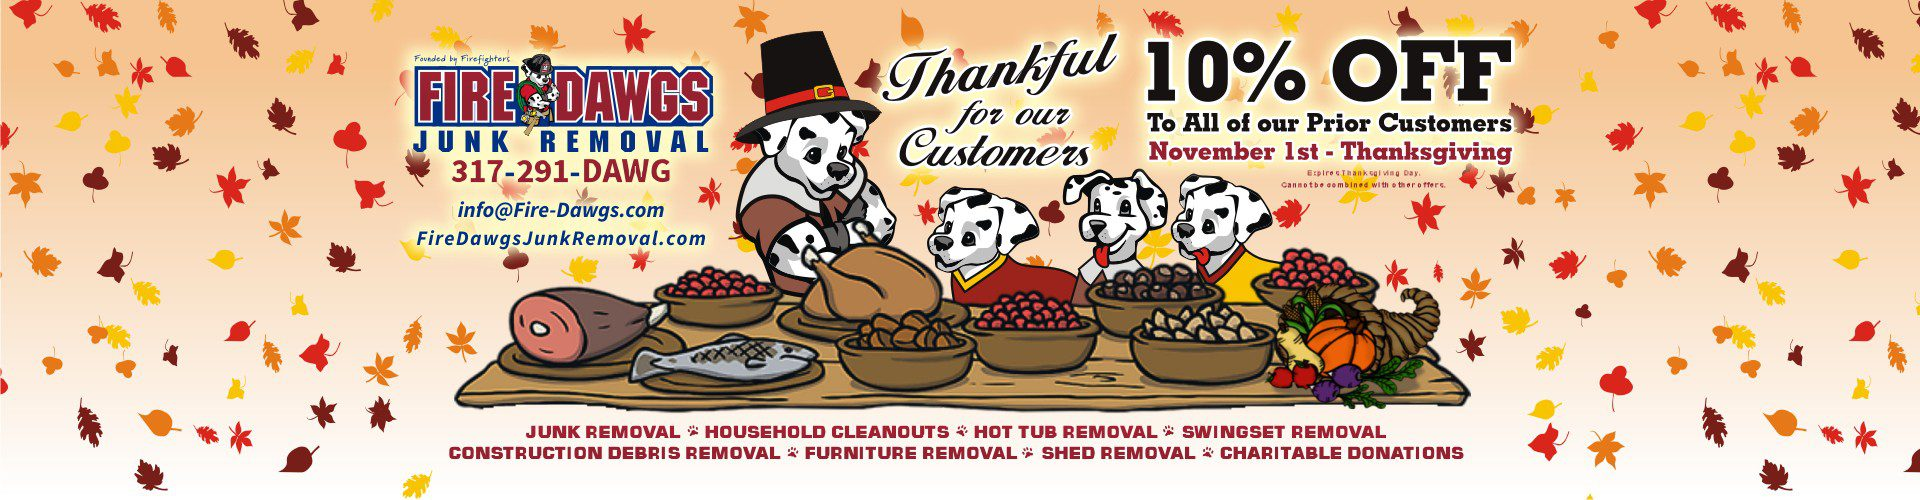 fire dawgs junk hauling indianapolis customer appreciation coupon